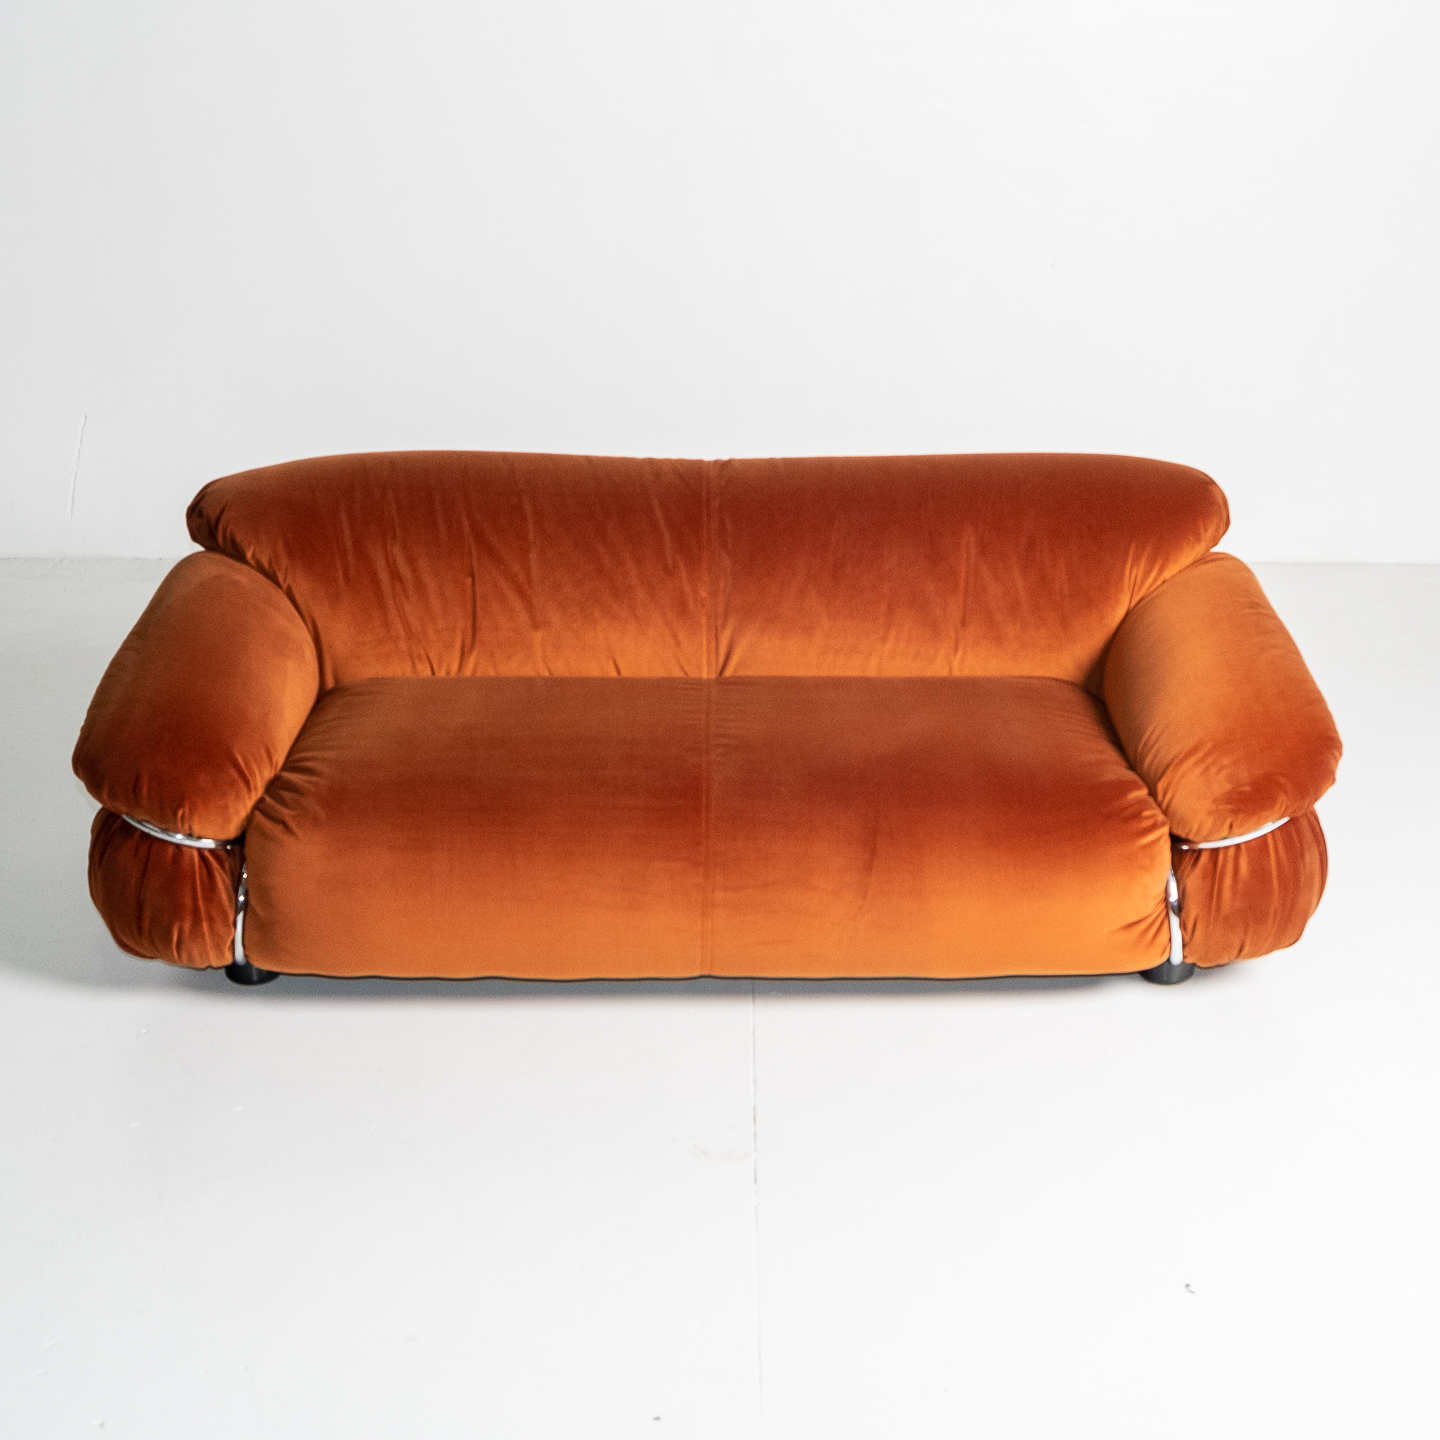 Model 595 Sesann Sofa By Gianfranco Frattini For Cassina, 1970s, Italy 183